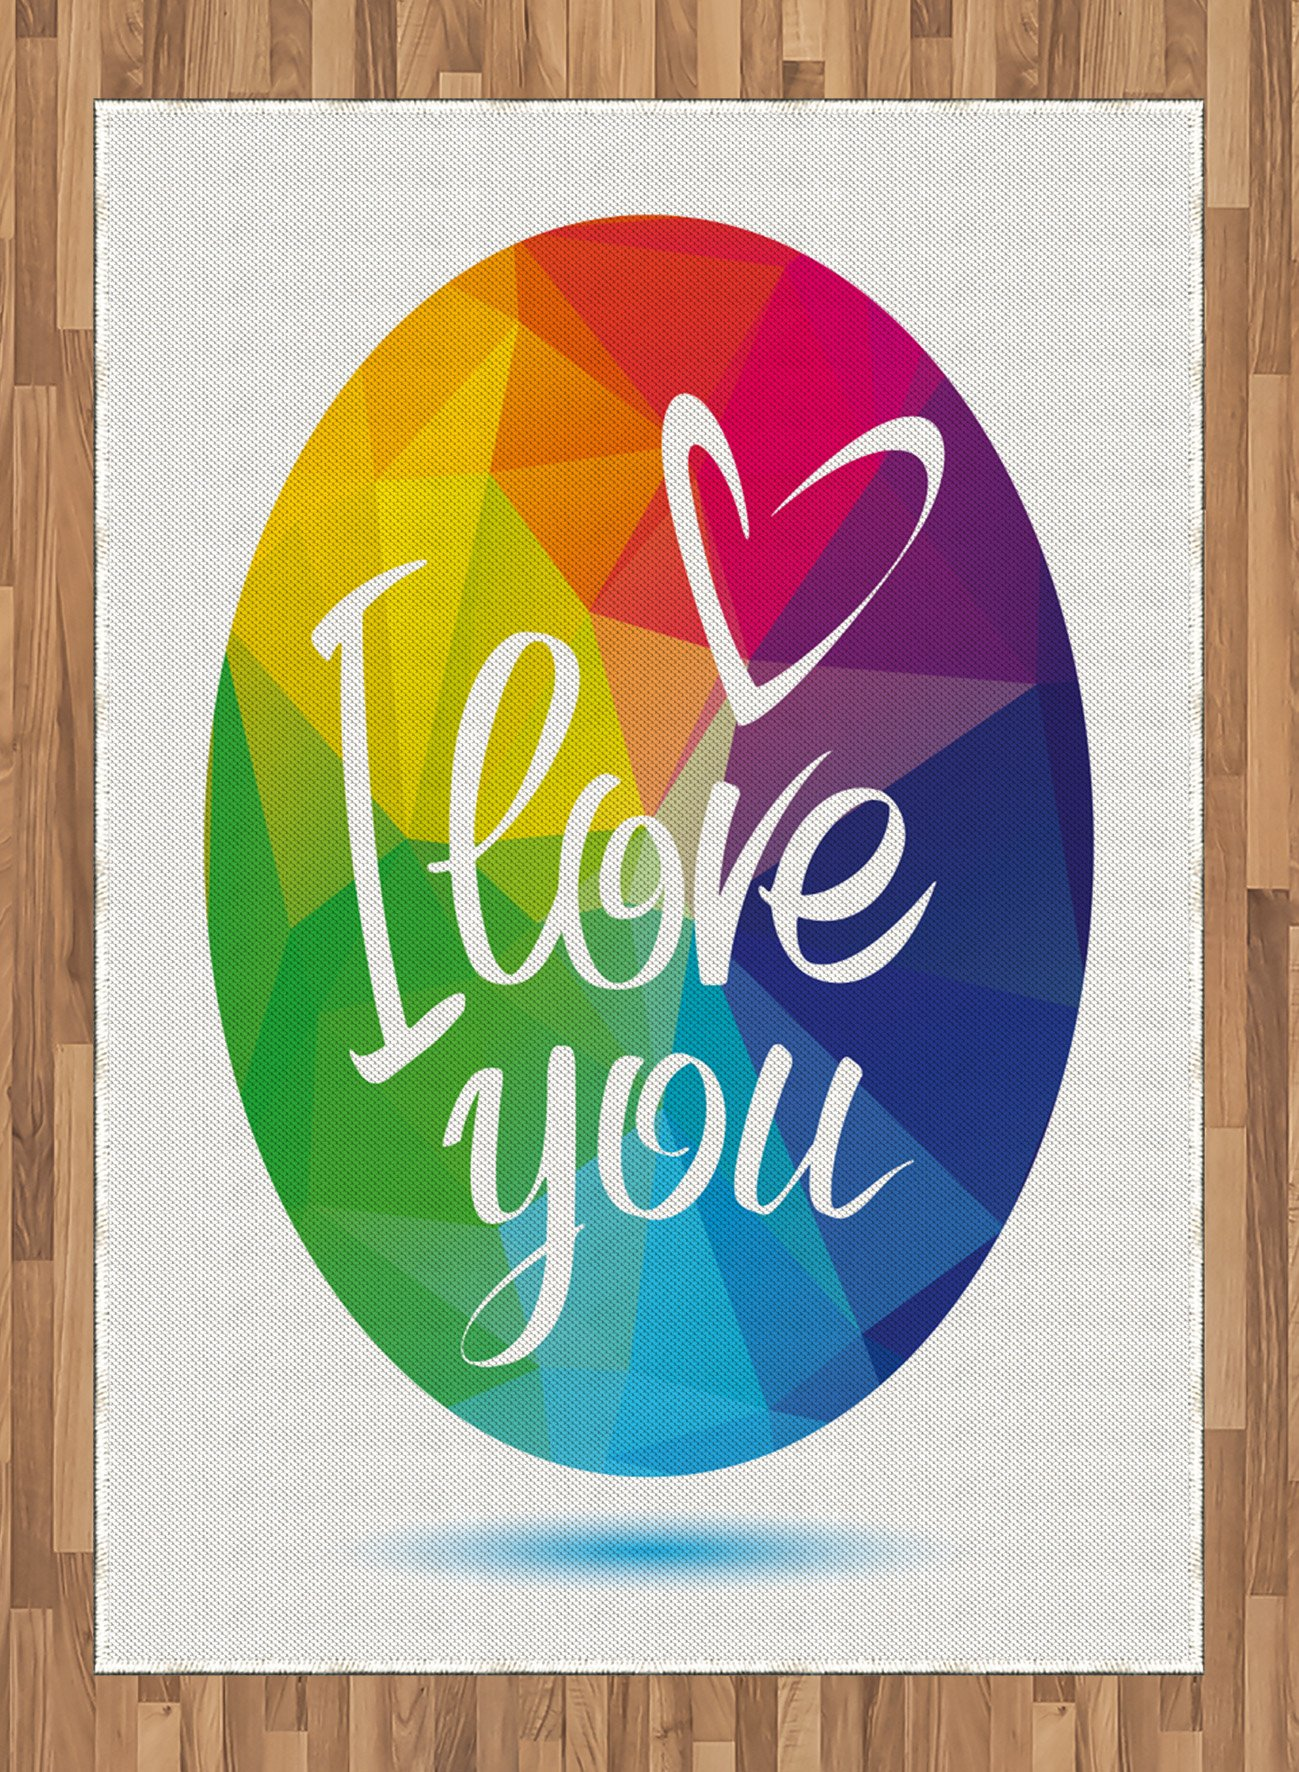 Pride Area Rug by Ambesonne, Rounded Polygonal Rainbow Colored Framework with I Love You Calligraphic Design, Flat Woven Accent Rug for Living Room Bedroom Dining Room, 5.2 x 7.5 FT, Multicolor